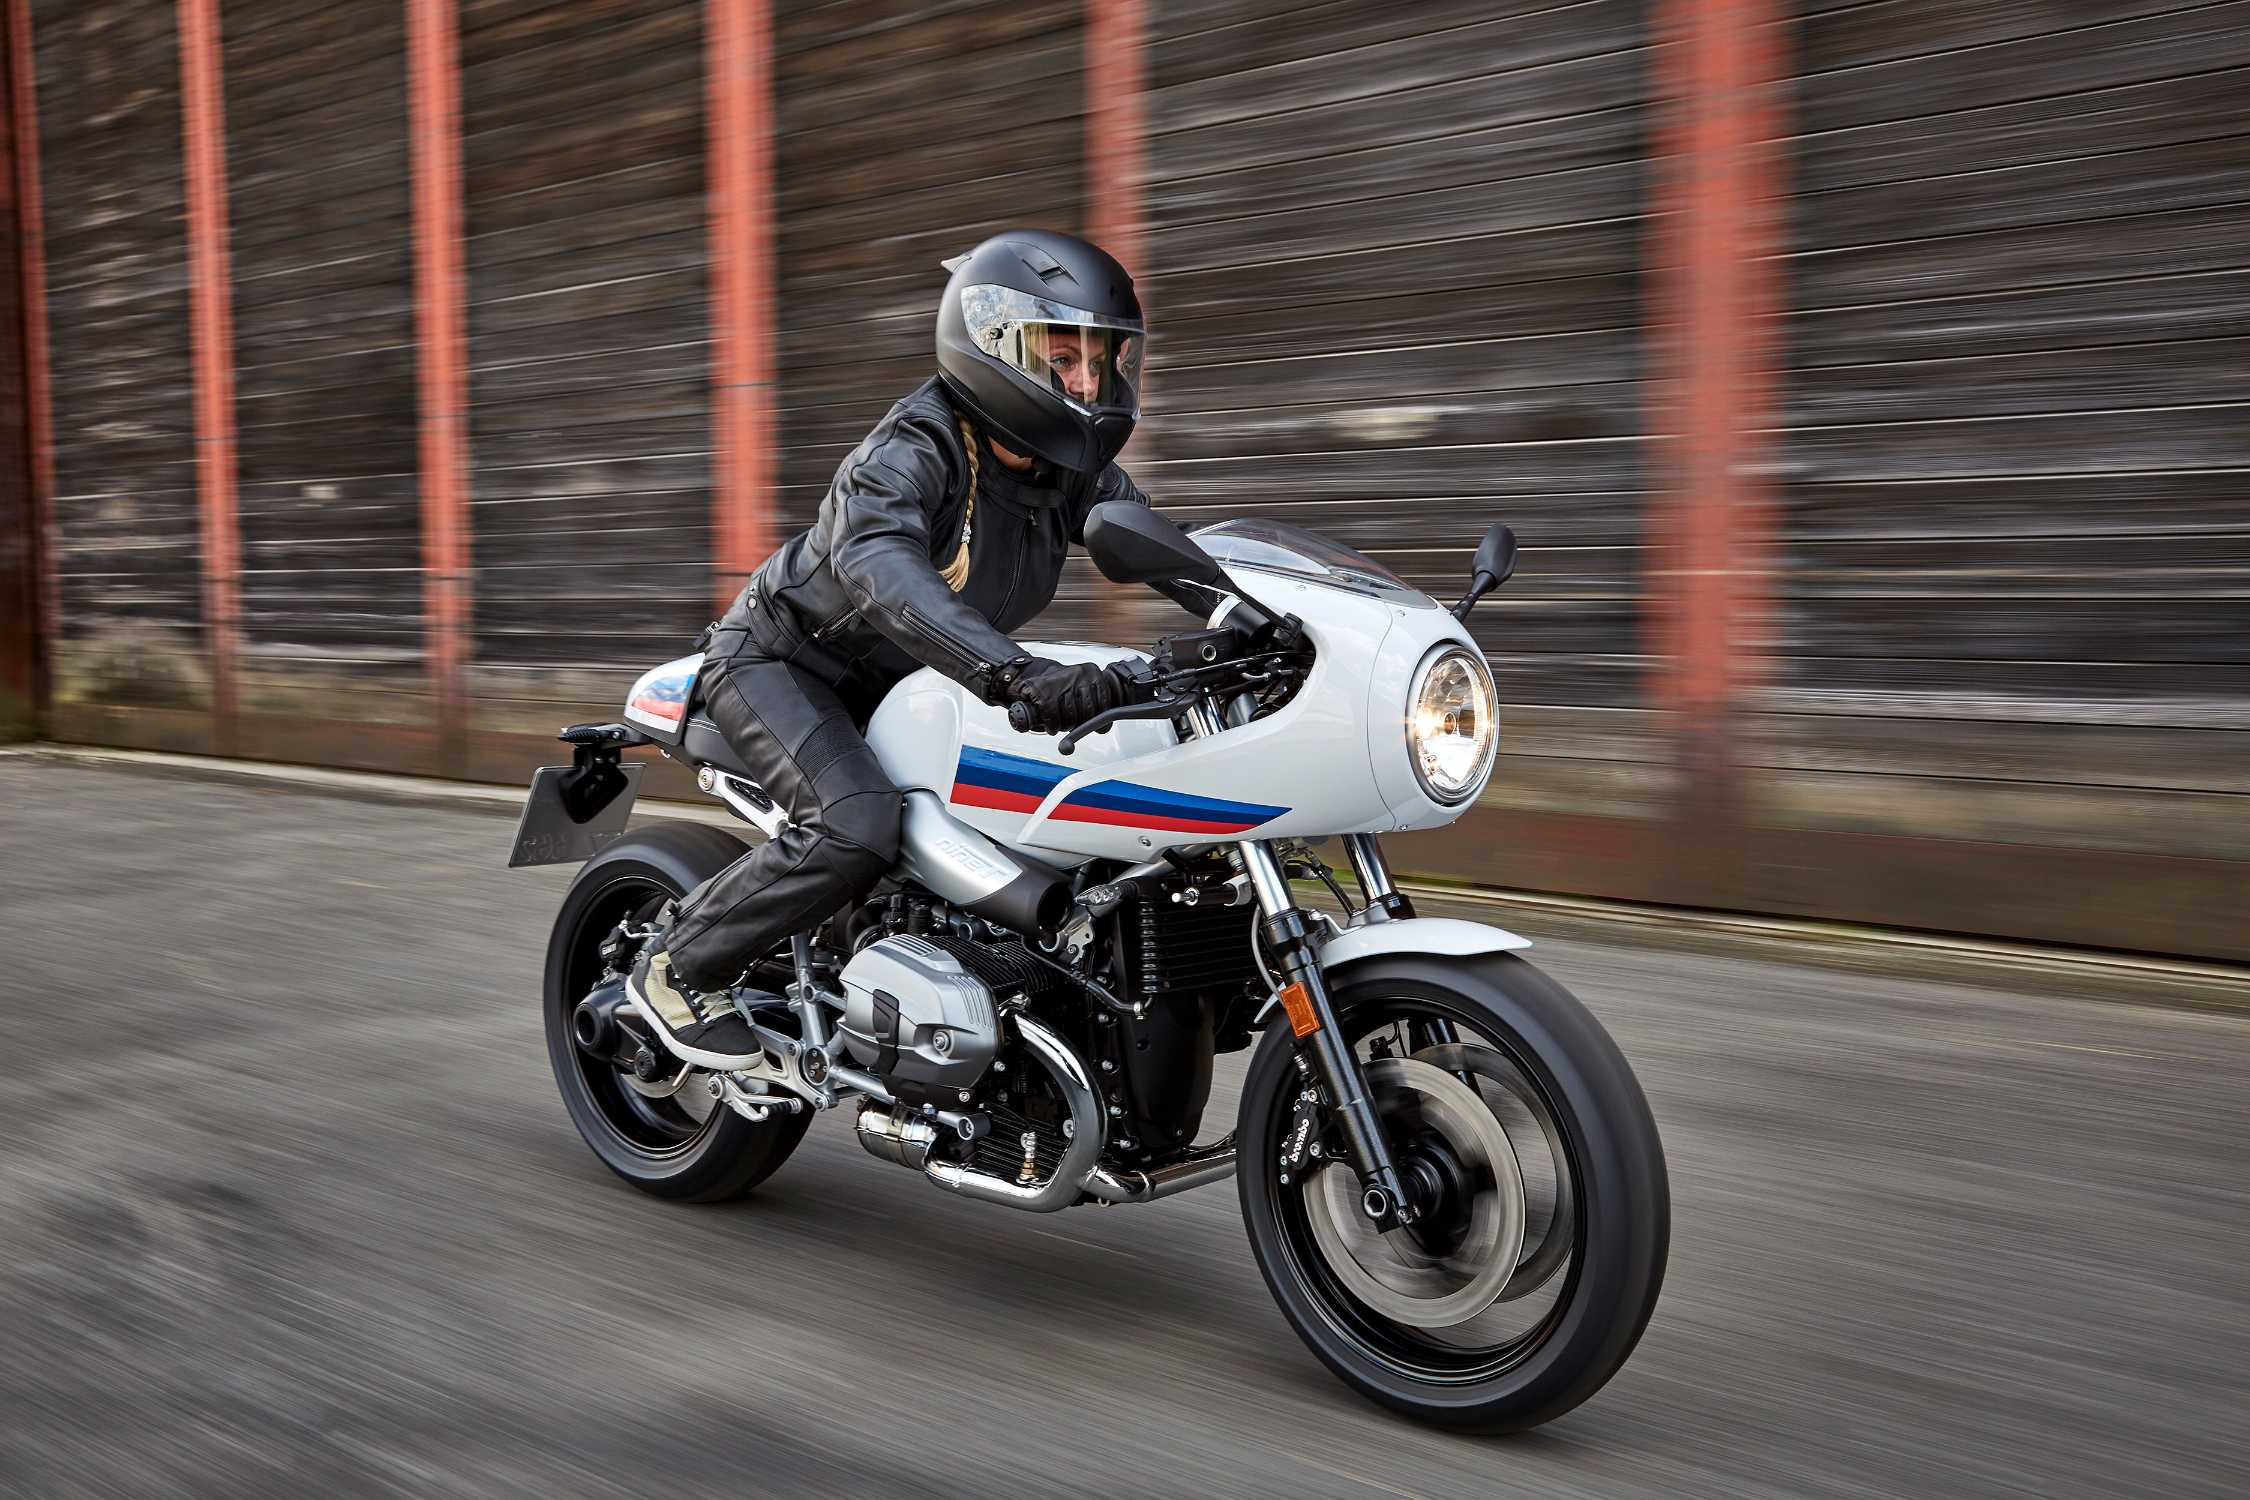 P90232556-the-new-bmw-r-ninet-racer-10-2016-2250px Extraordinary Bmw R 1200 R Nine T Cars Trend